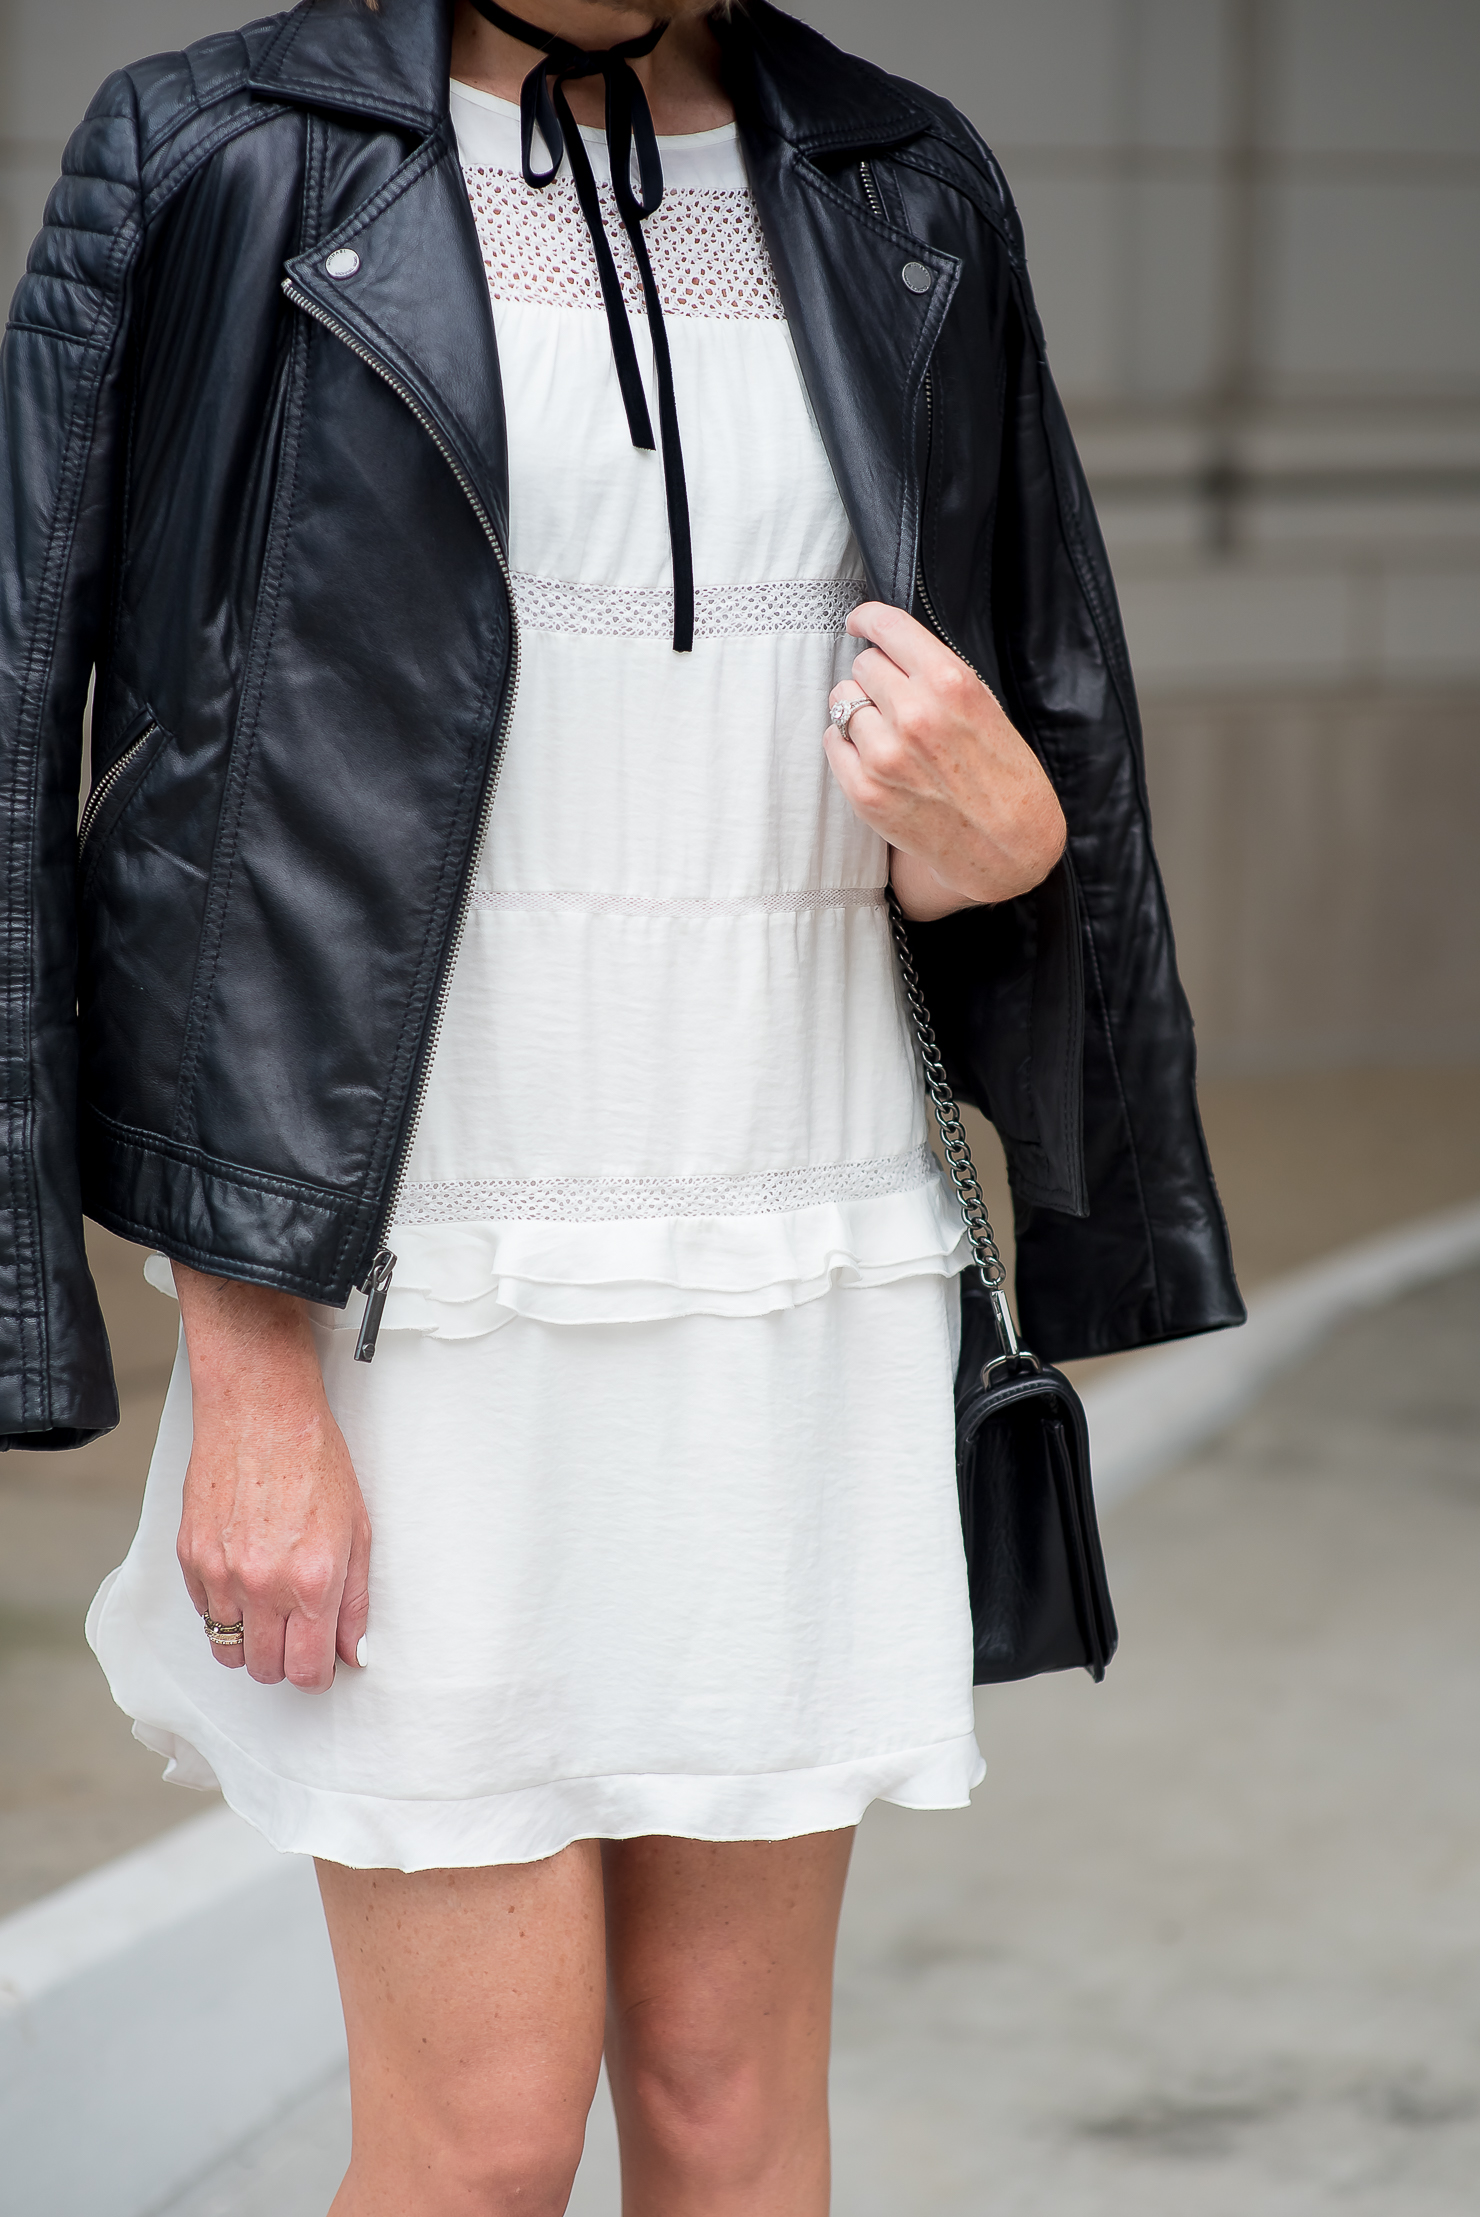 Leather jacket target - Who What Wear For Target White Ruffled Dress Michael Kors Leather Jacket